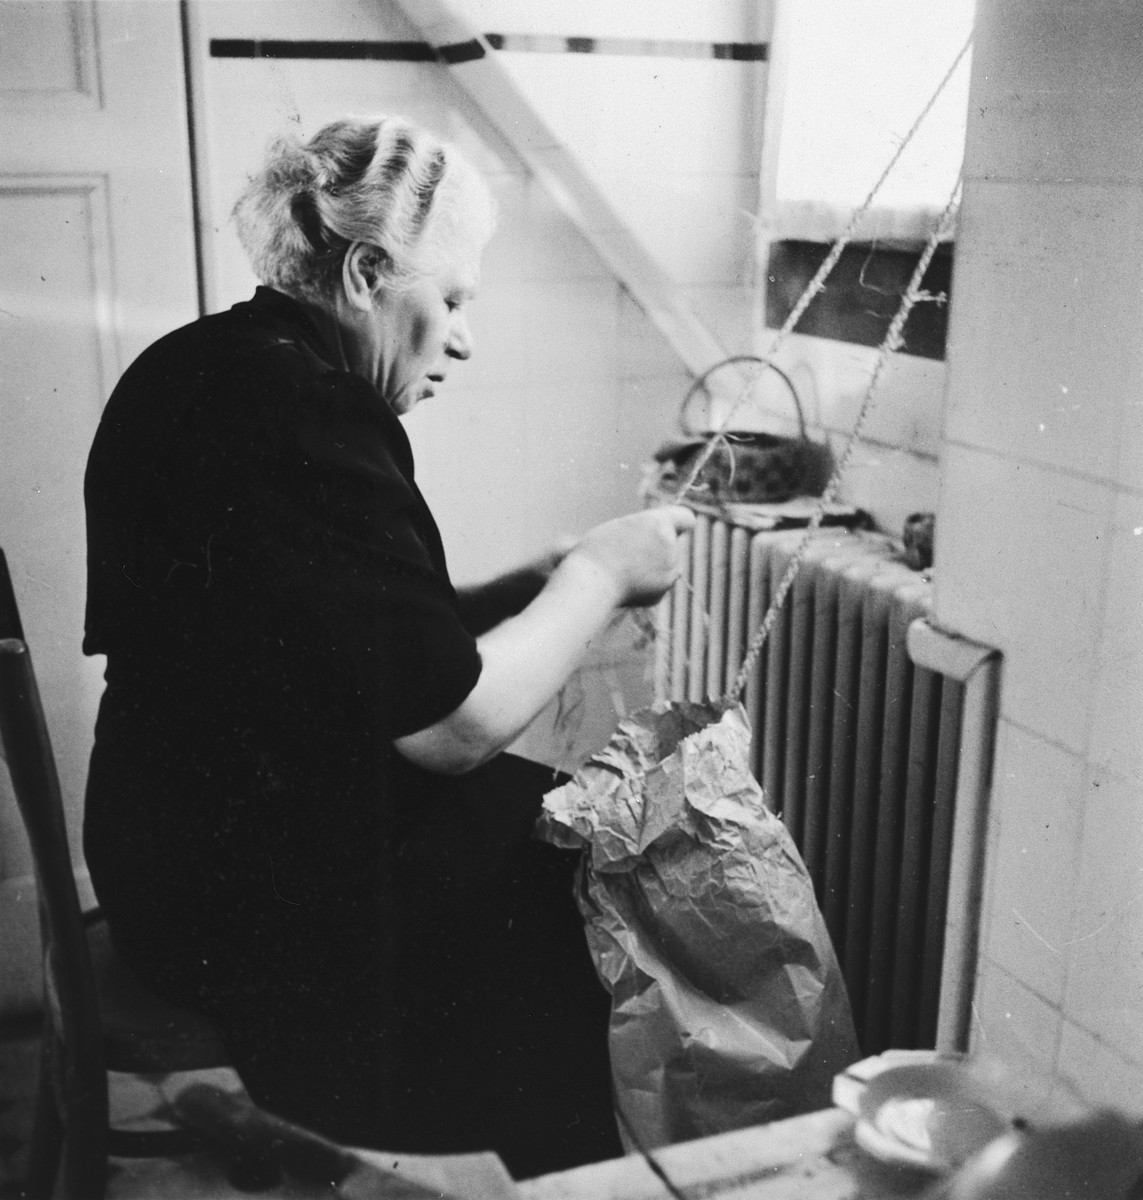 A Jewish refugee braids rope in her apartment in Switzerland.  Pictured is Renate Hirsch, the grandmother of the donor.